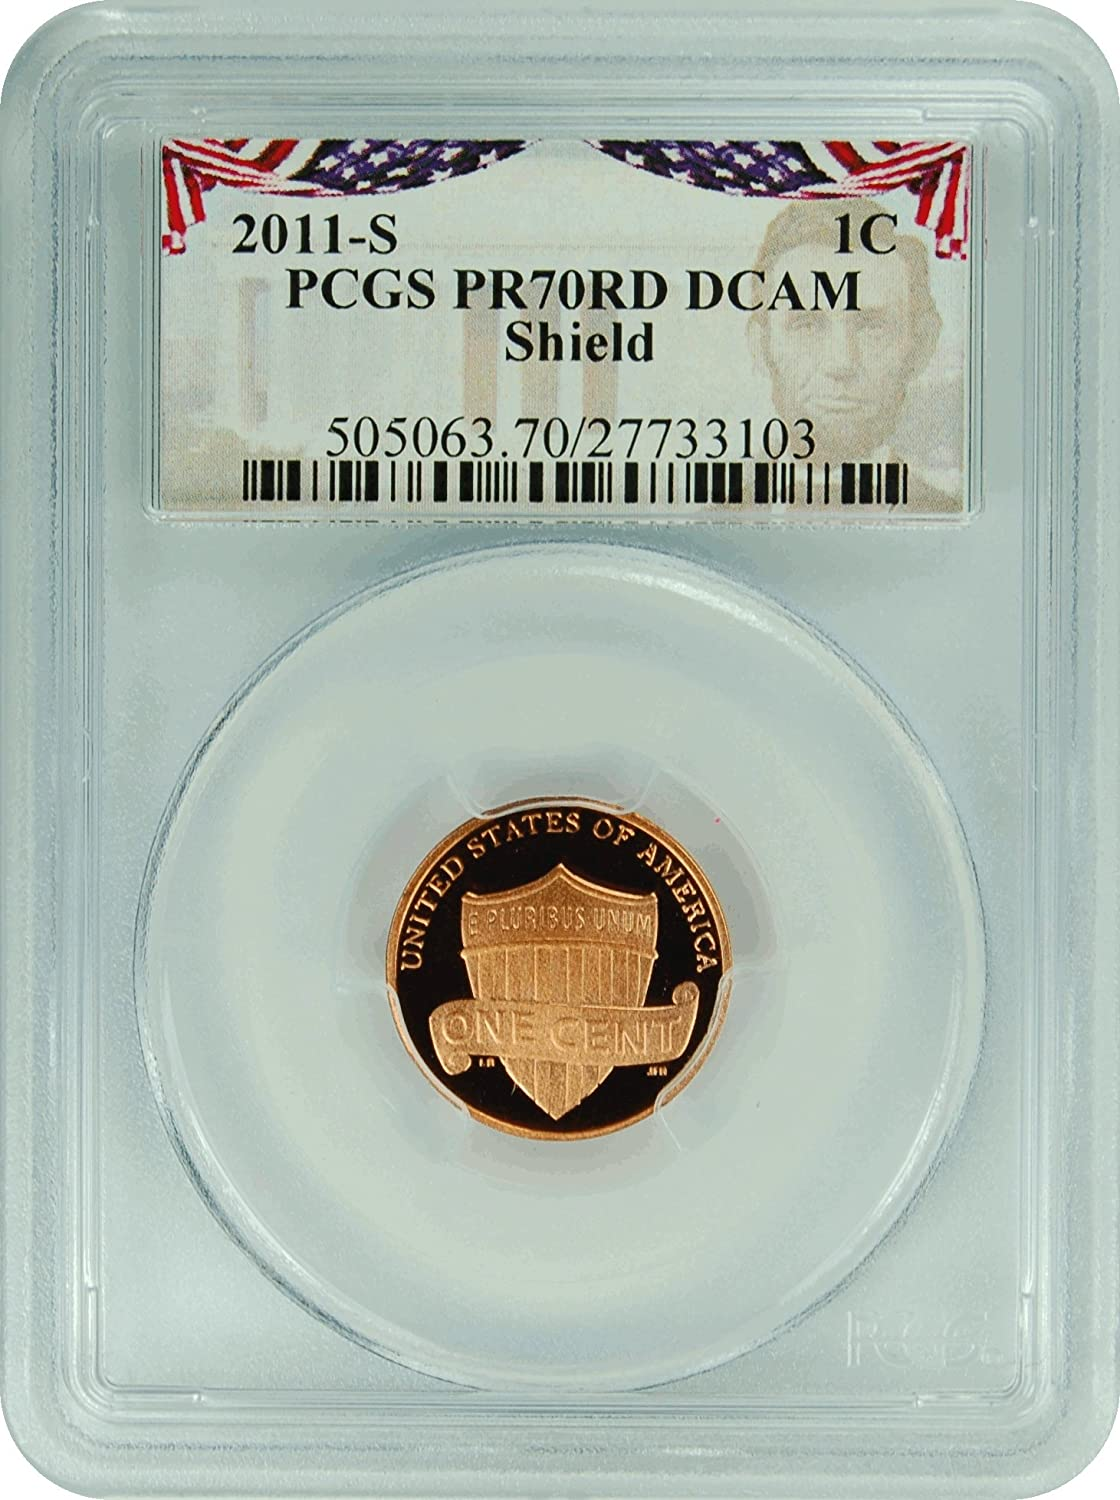 2016-S Proof Lincoln Cent Shield PCGS PR70RD DCAM FIRST STRIKE